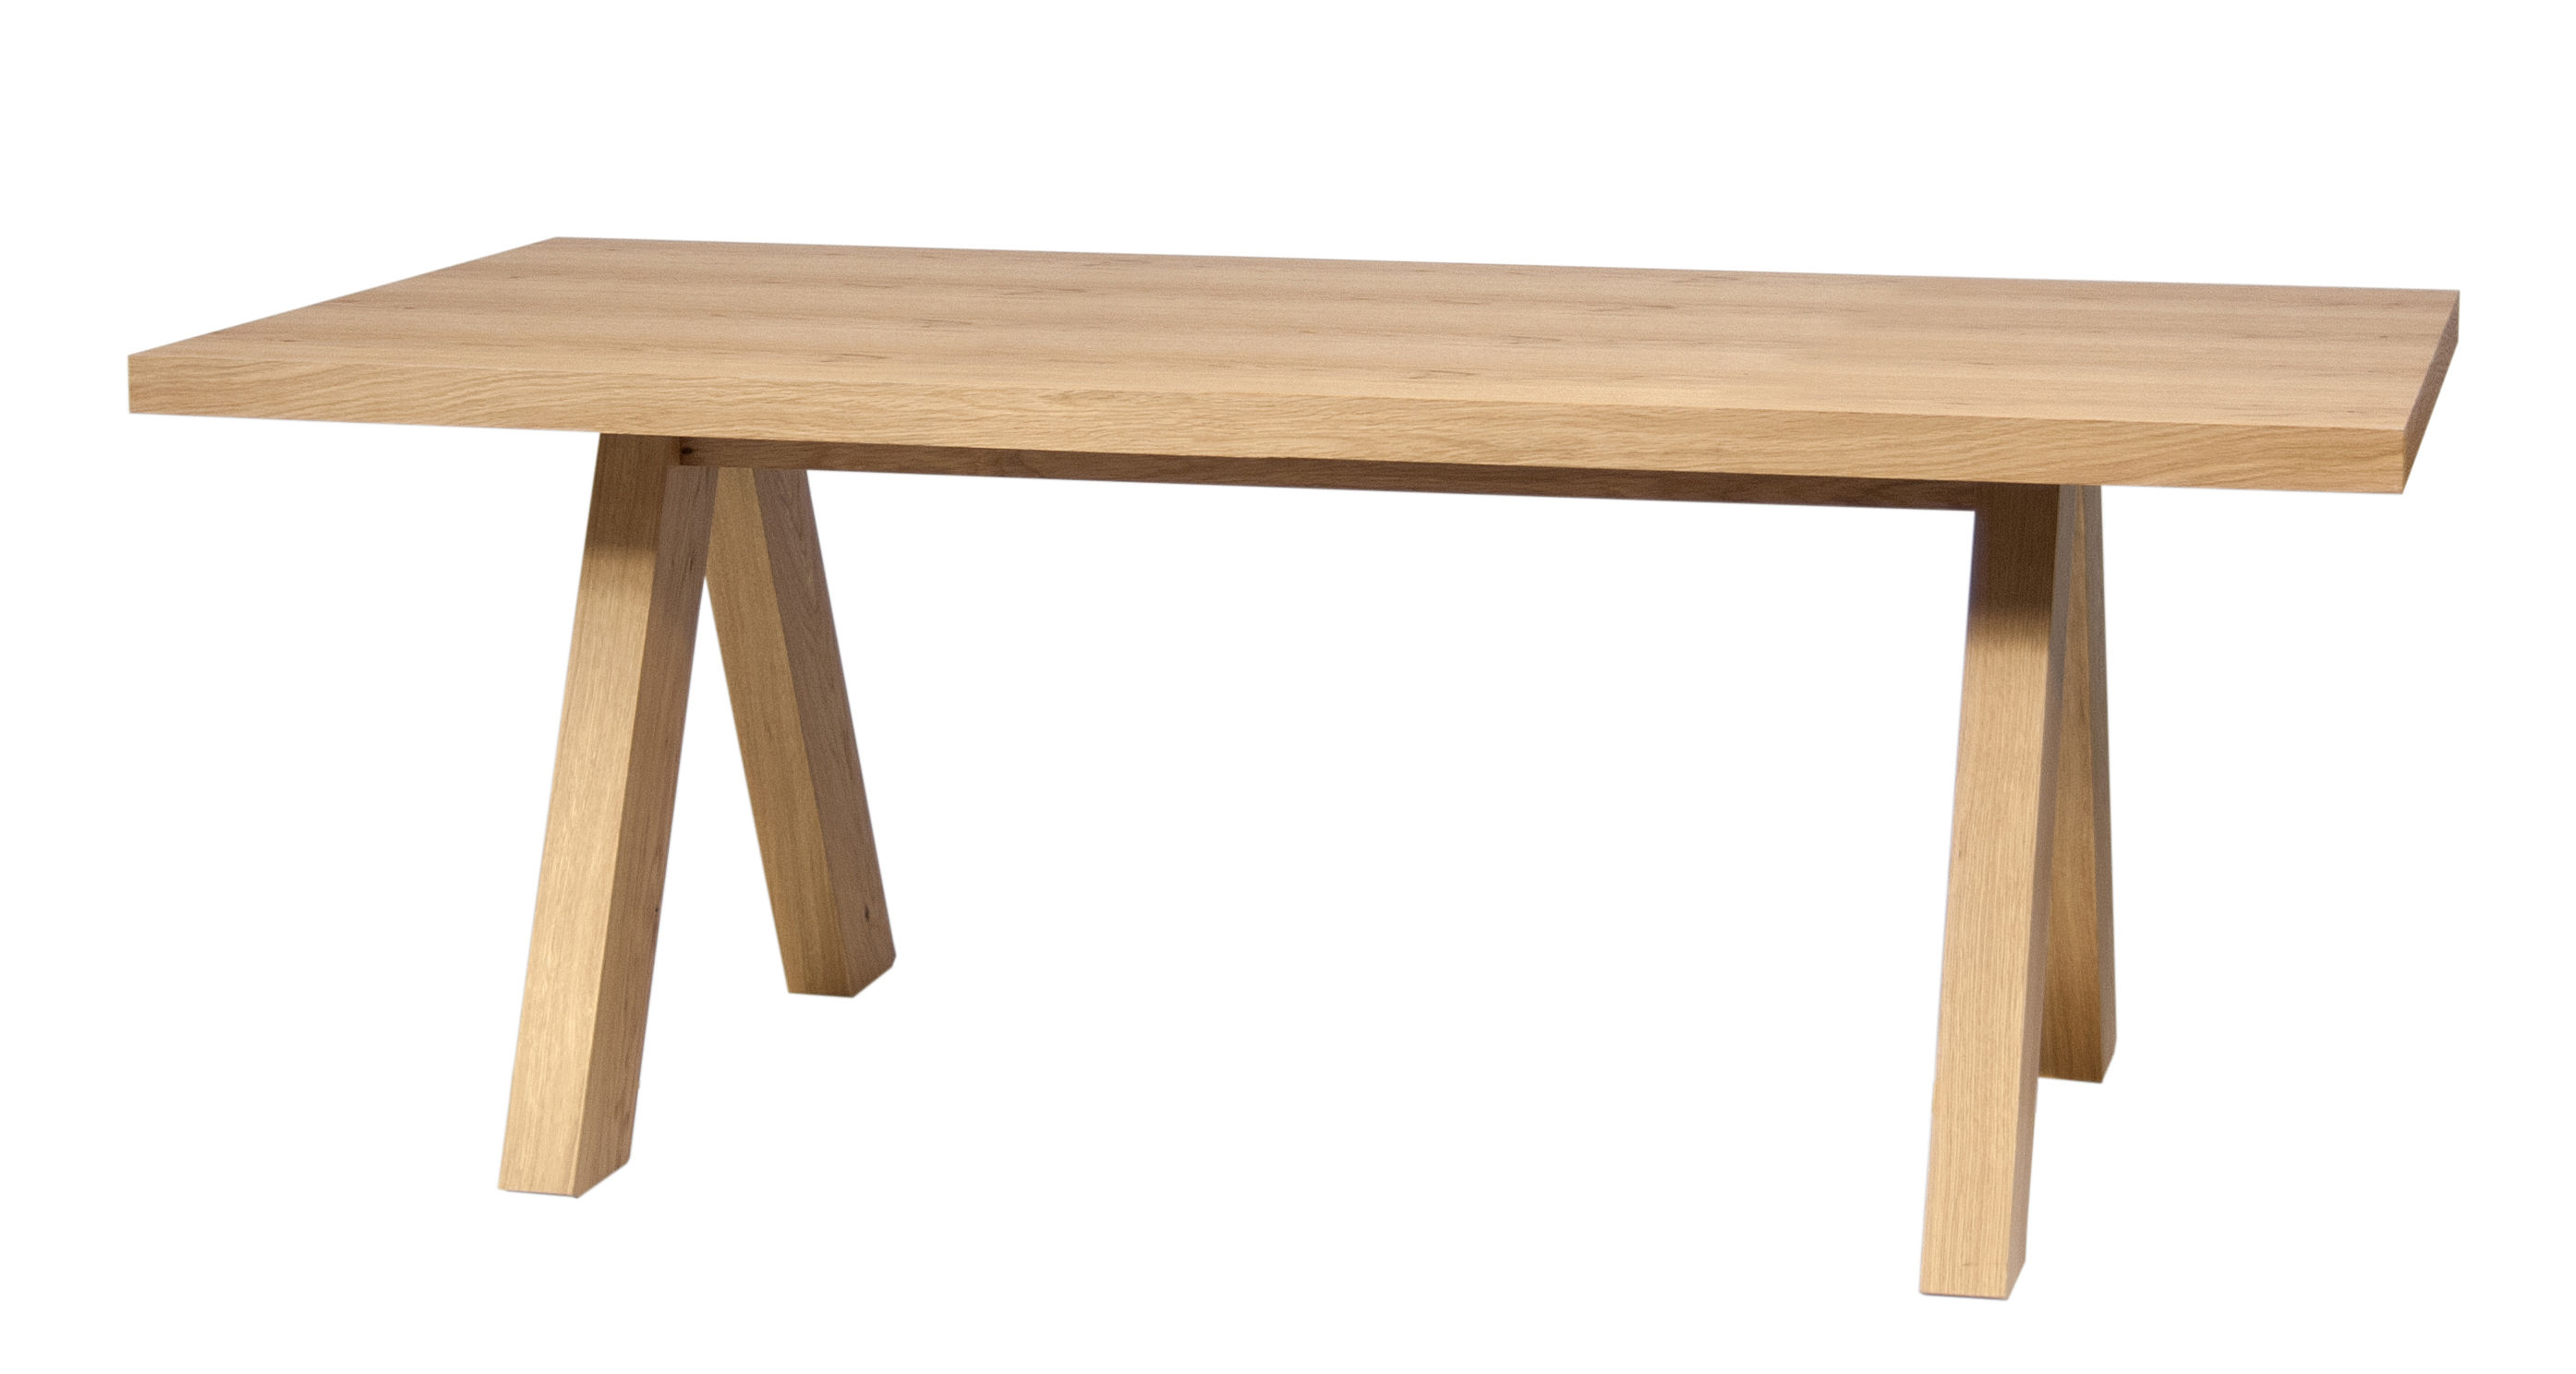 Home > Top 100 Furniture/bestseller > Oak Table 200 X 100 Cm By POP . Full resolution‎  portraiture, nominally Width 2789 Height 1488 pixels, portraiture with #956836.